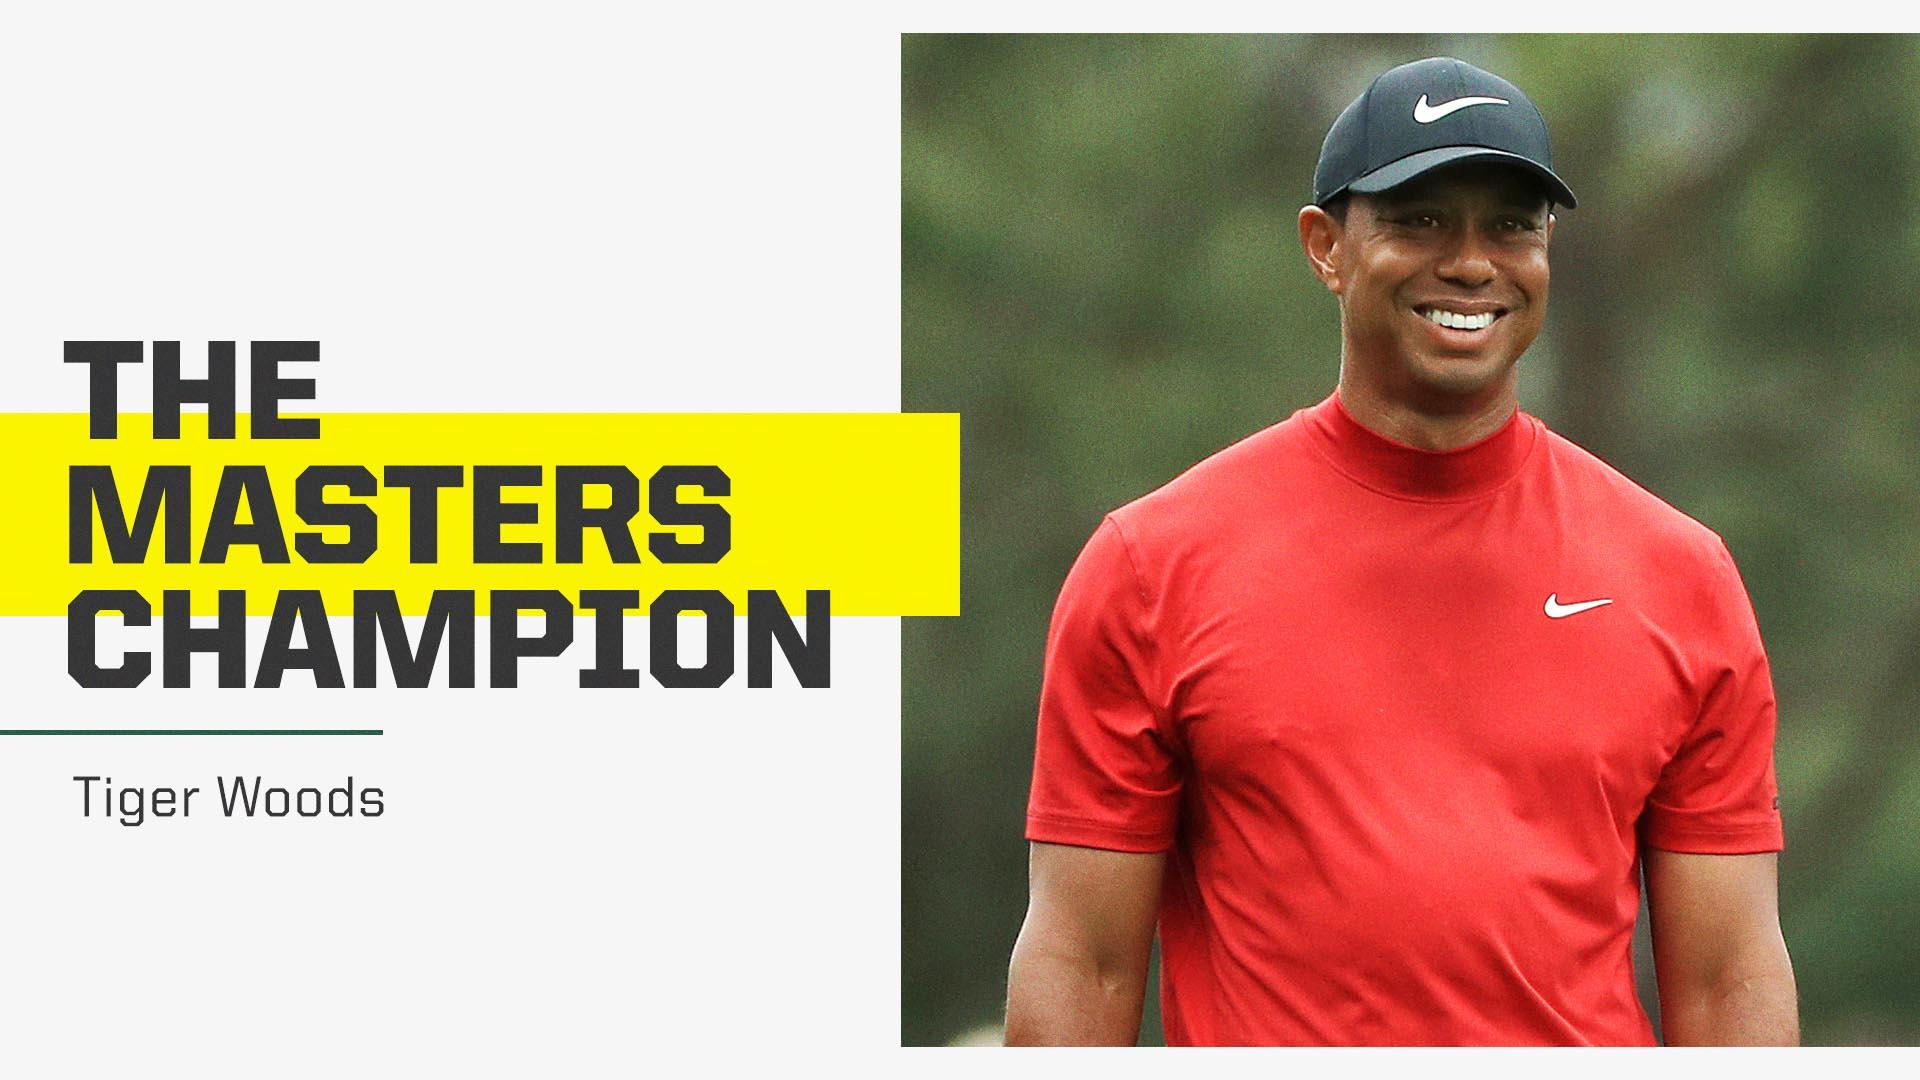 HE'S BACK ON TOP!  TIGER WOODS WINS HIS FIRST MAJOR SINCE 2008! �� https://t.co/XlIvwgiUJo